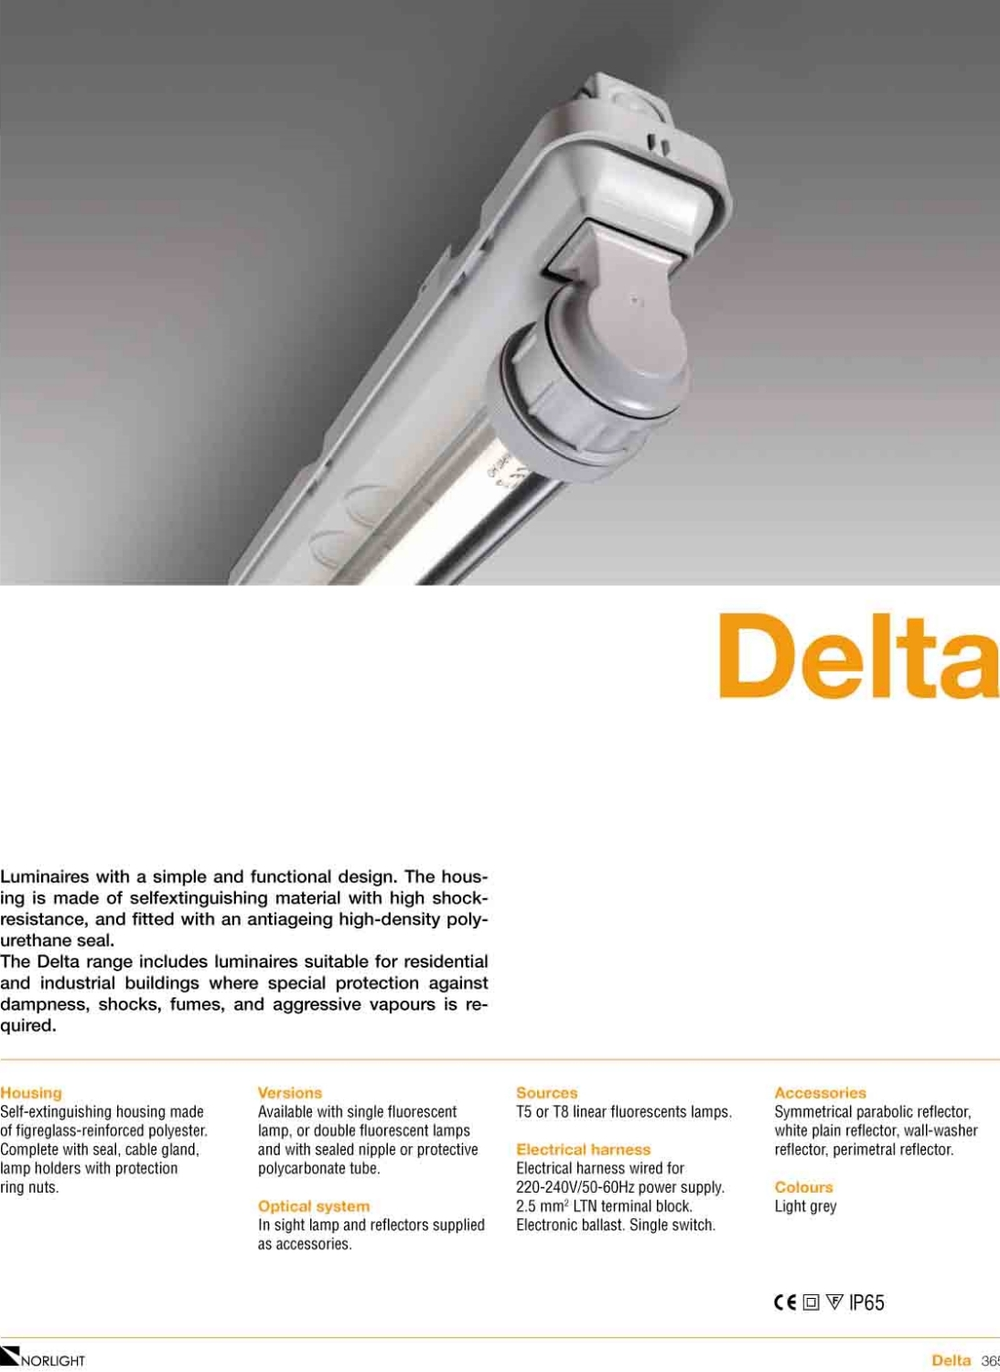 105_Norlight_Catalogue_2012_Delta-366.jpg